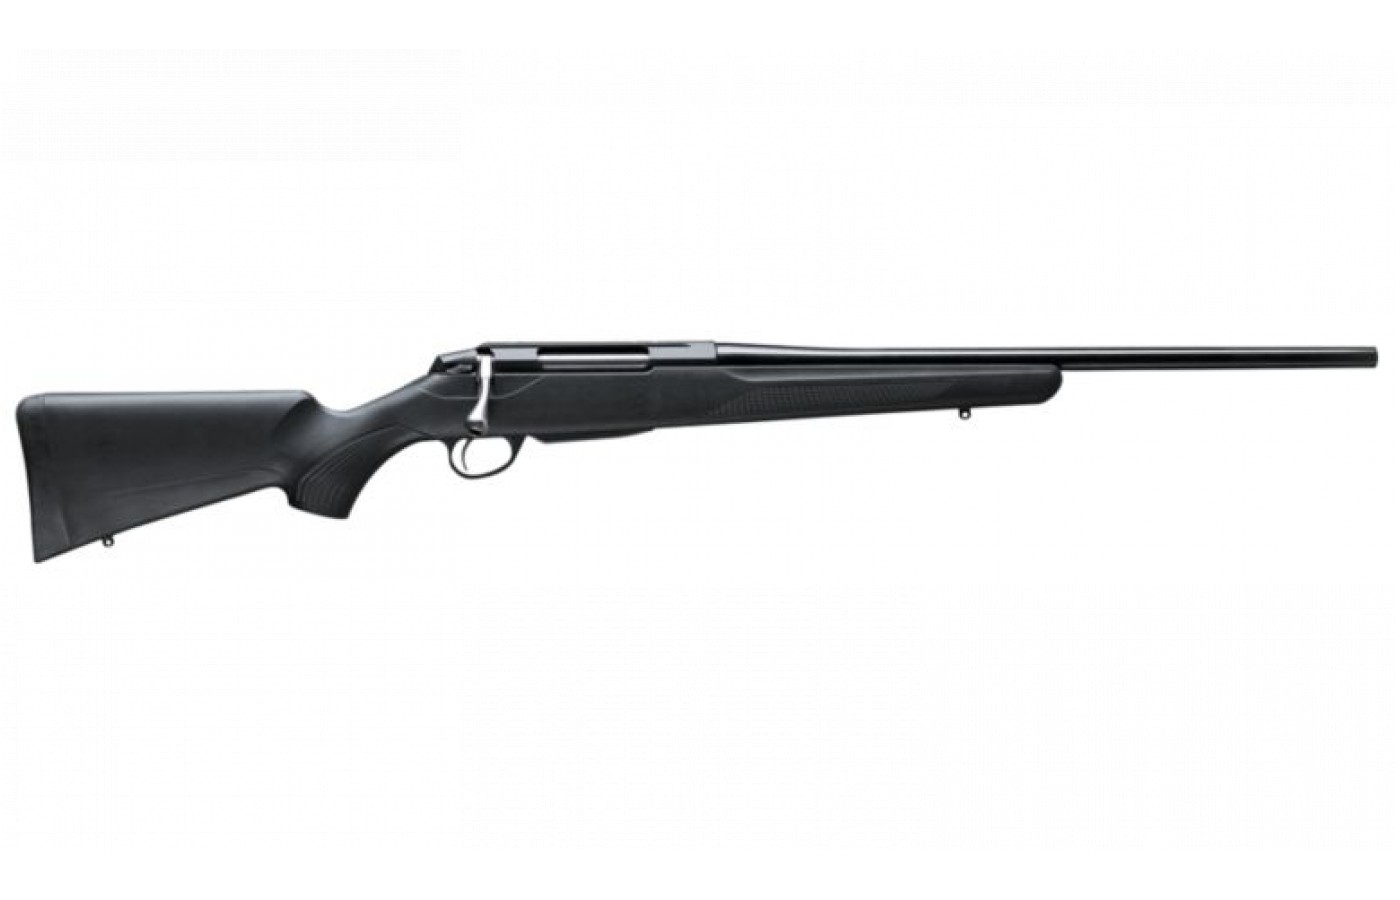 This particular rifle comes with one weatherproof matte black synthetic stock.